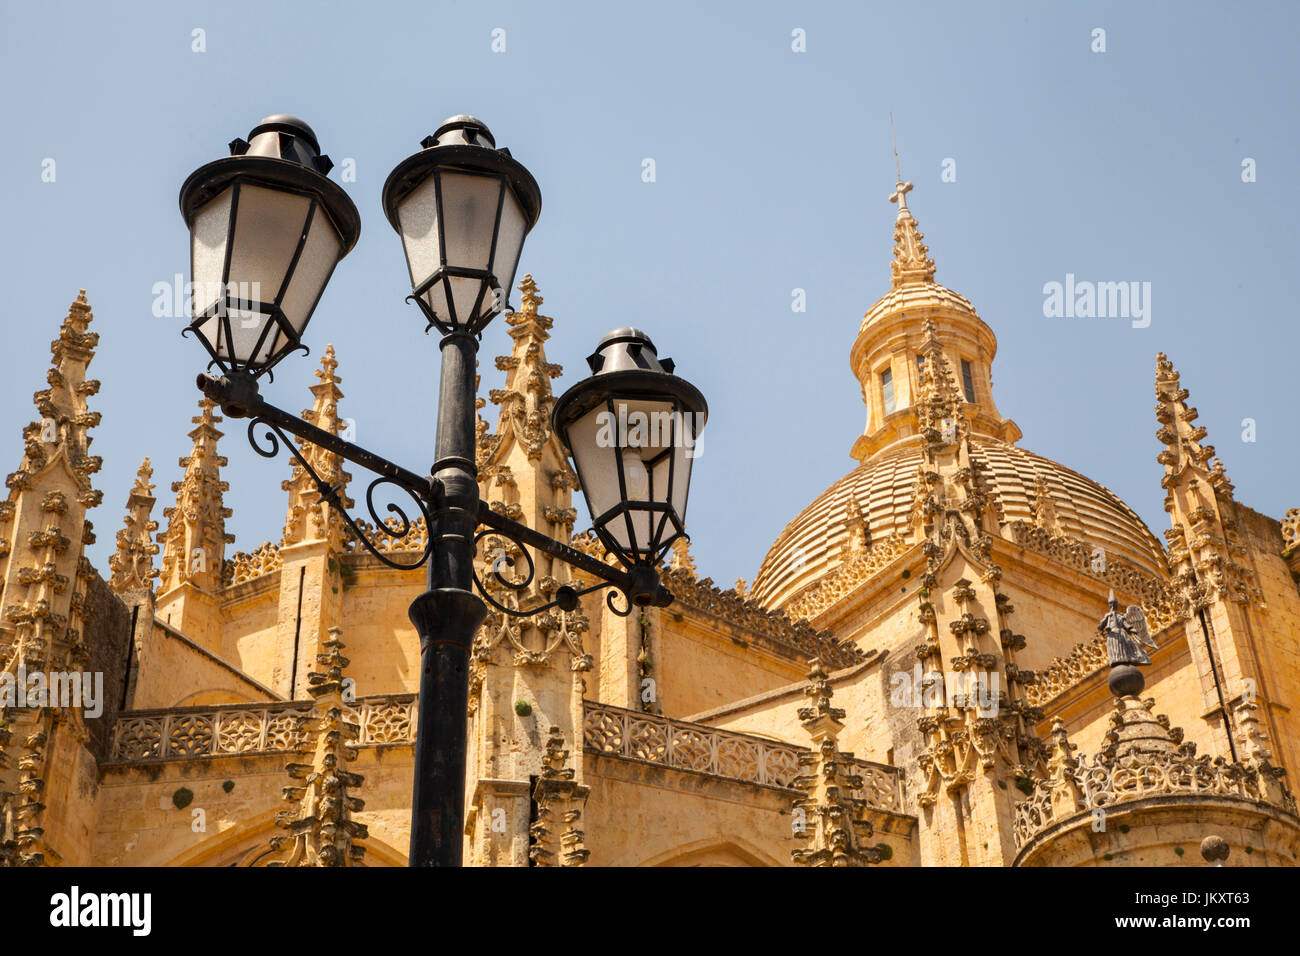 View of Segovia cathedral a UNESCO world heritage site in the Castilla Y Leon region of central Spain - Stock Image